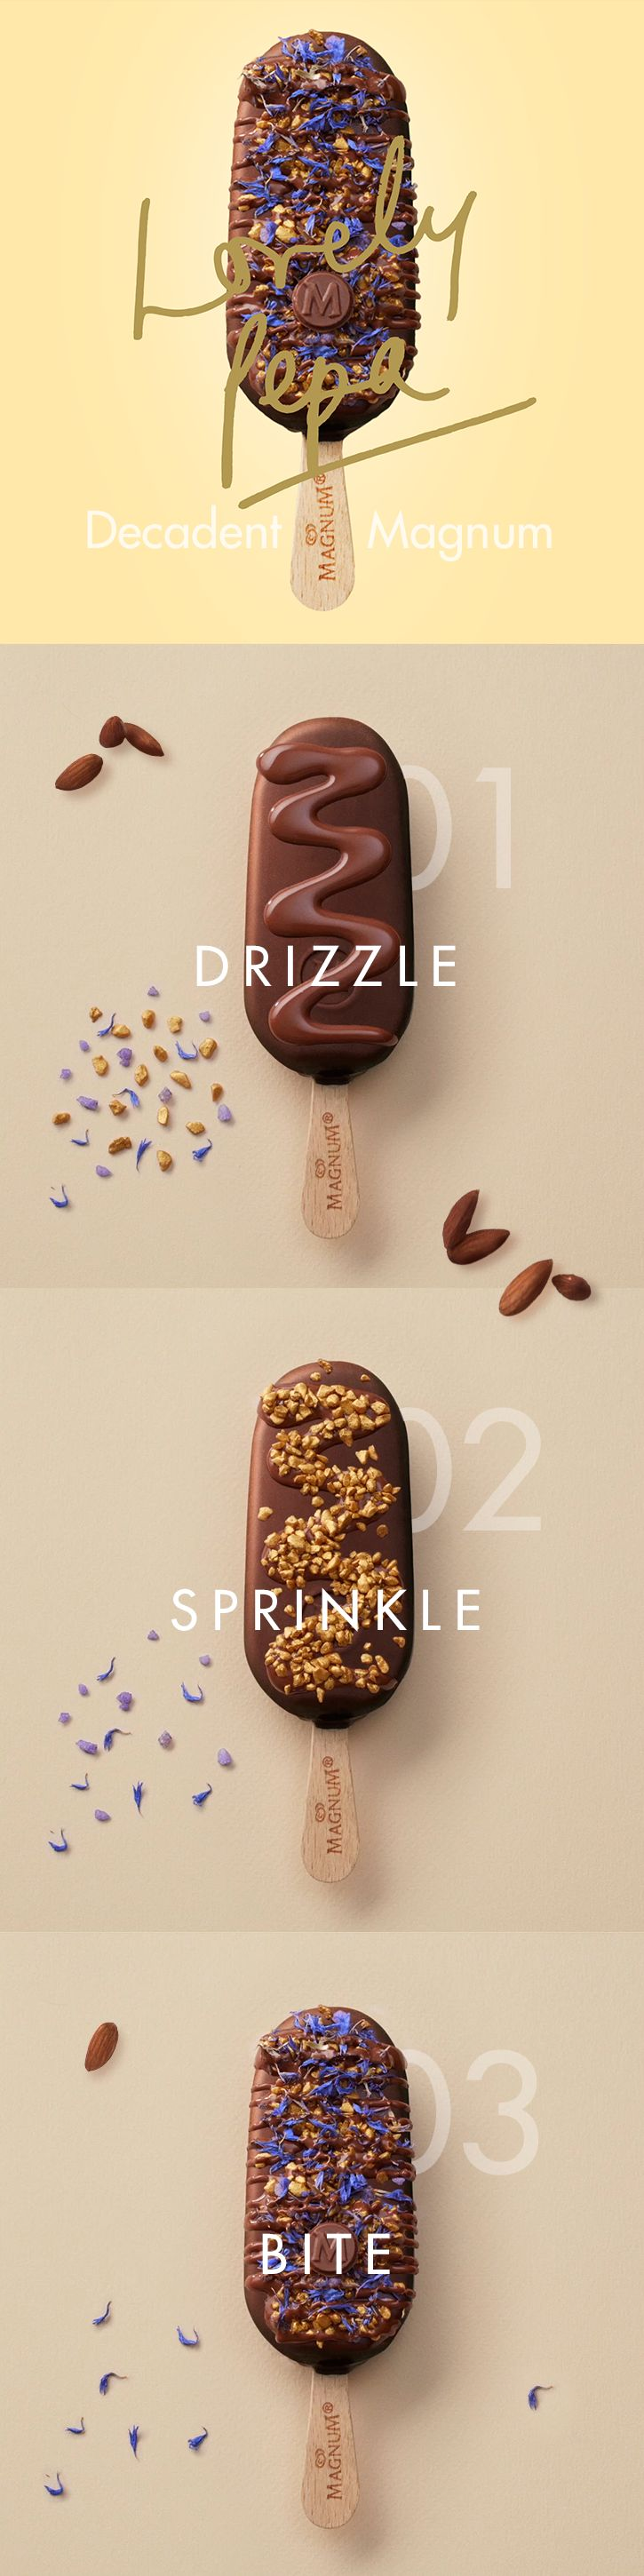 Subtlety is key to globetrotting stylist Alexandra Pereira's dream Magnum. Decorate your Magnum with understated yet rich combos, like crystallized violet and golden-hued nuts, covered with thick milk chocolate sauce.     Head over to http://www.magnumicecream.com/us/en/lovely-pepa-dream-magnum.html for the full recipe.